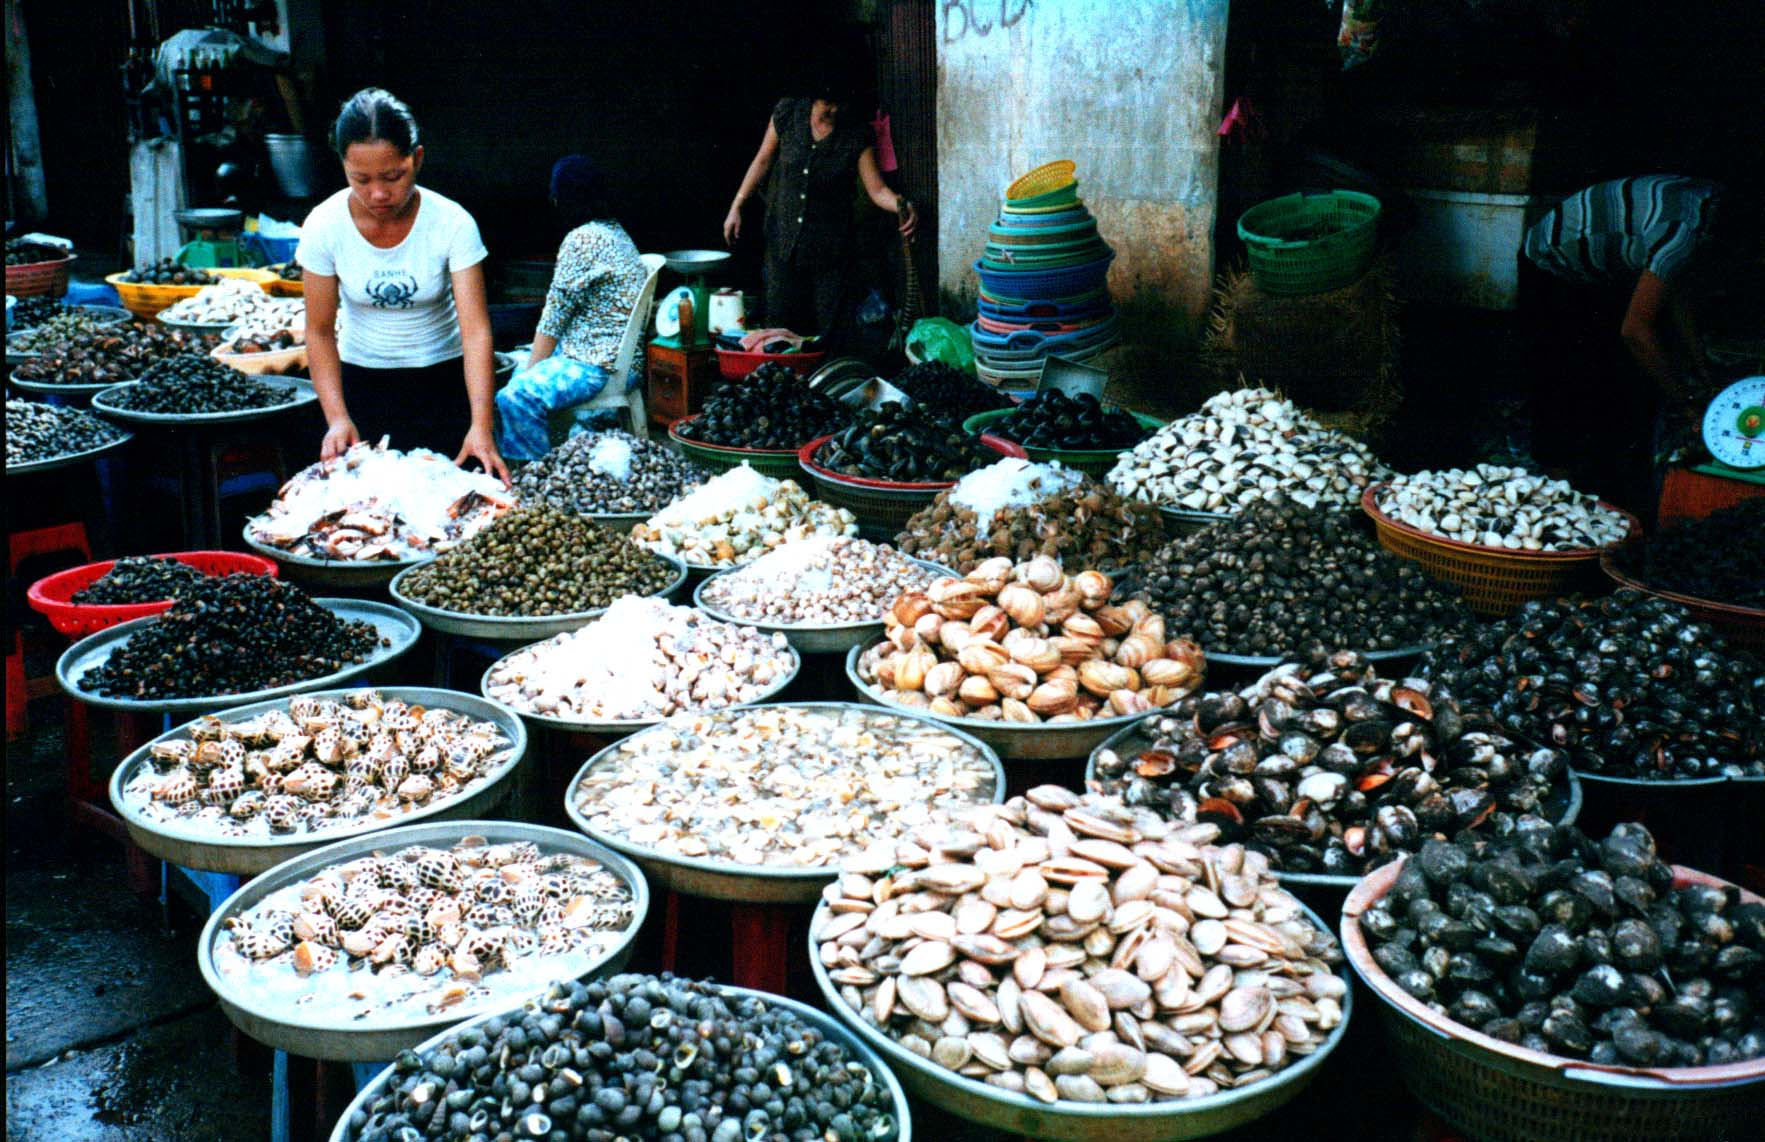 A vendor displays all kinds of shellfish at one of Ho Chi Minh's markets near the Saigon River (Ho Chi Minh, Vietnam) - Page 157